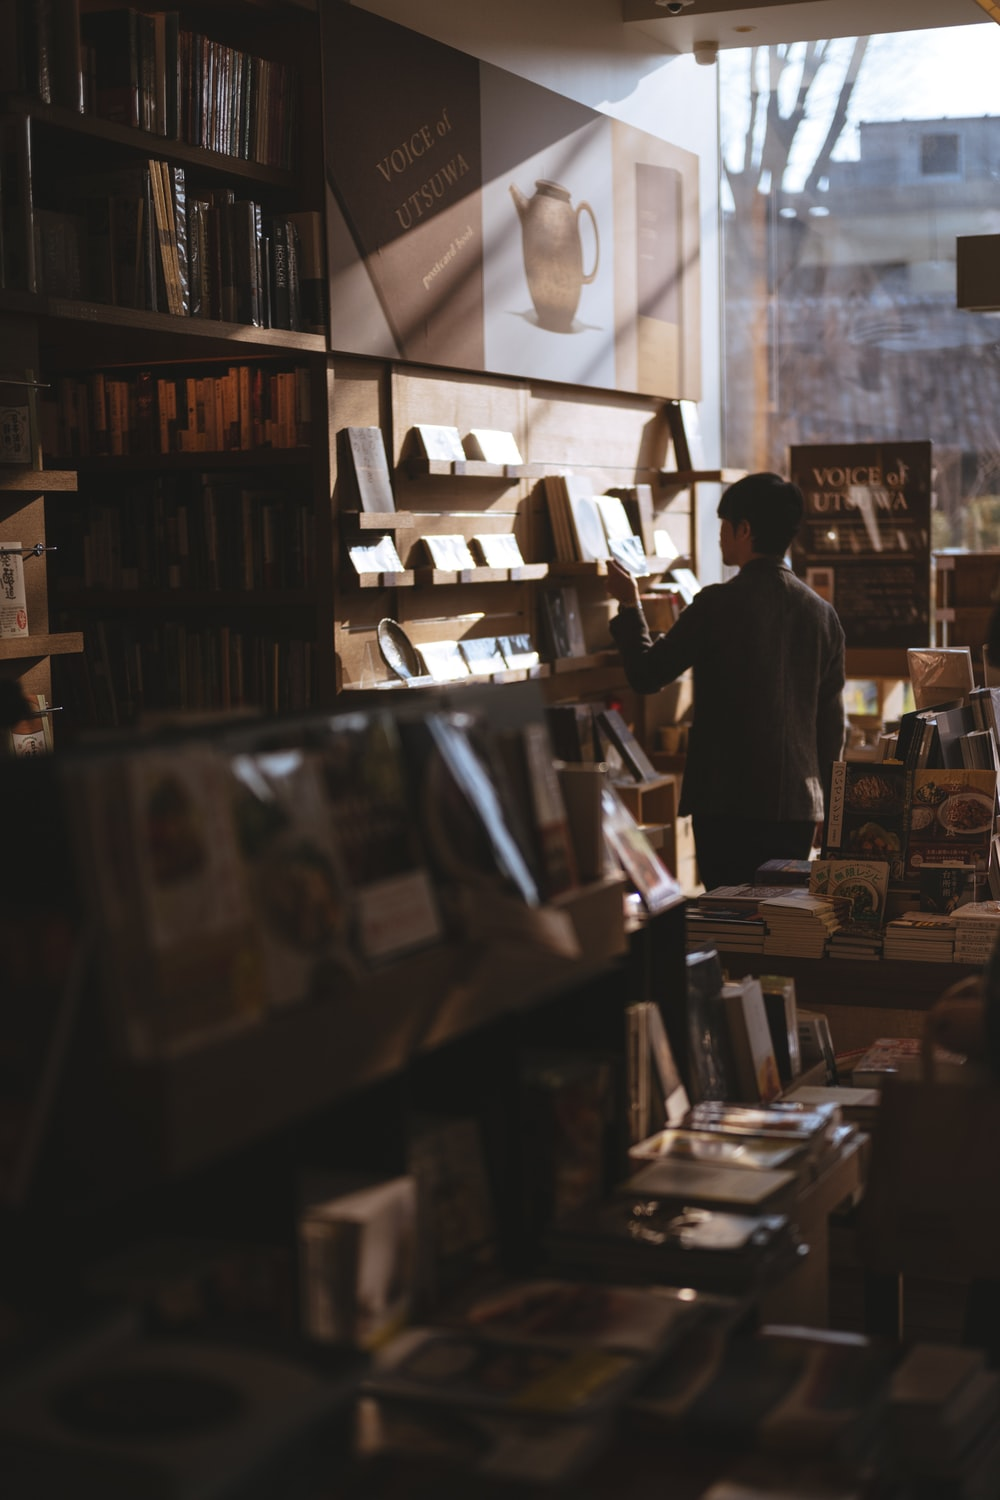 man standing inside library finding books